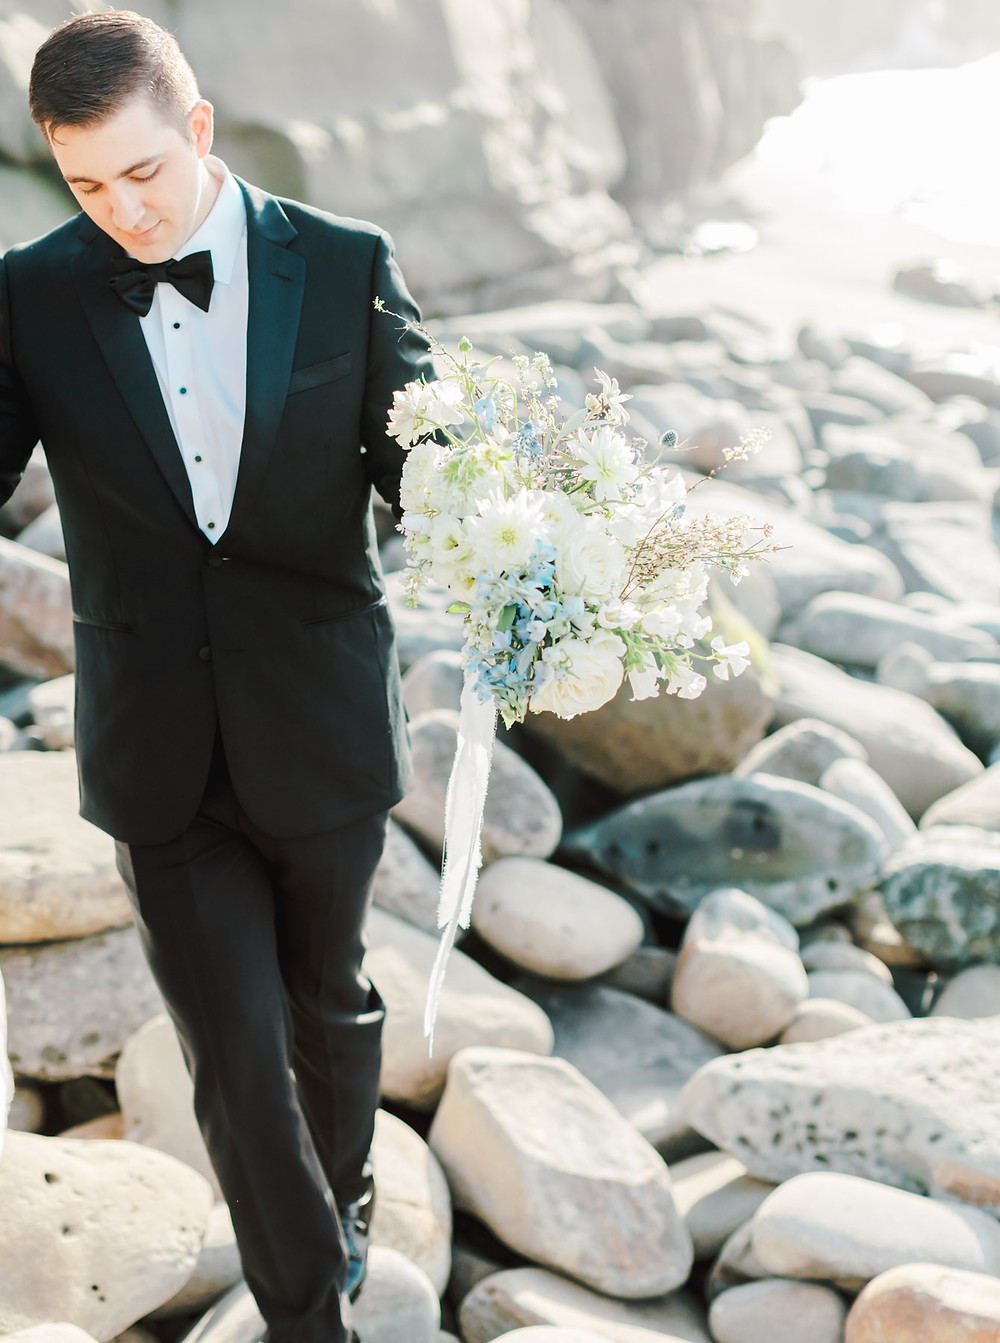 Megan + Nick's Organic Wedding at La Valencia in La Jolla, CA